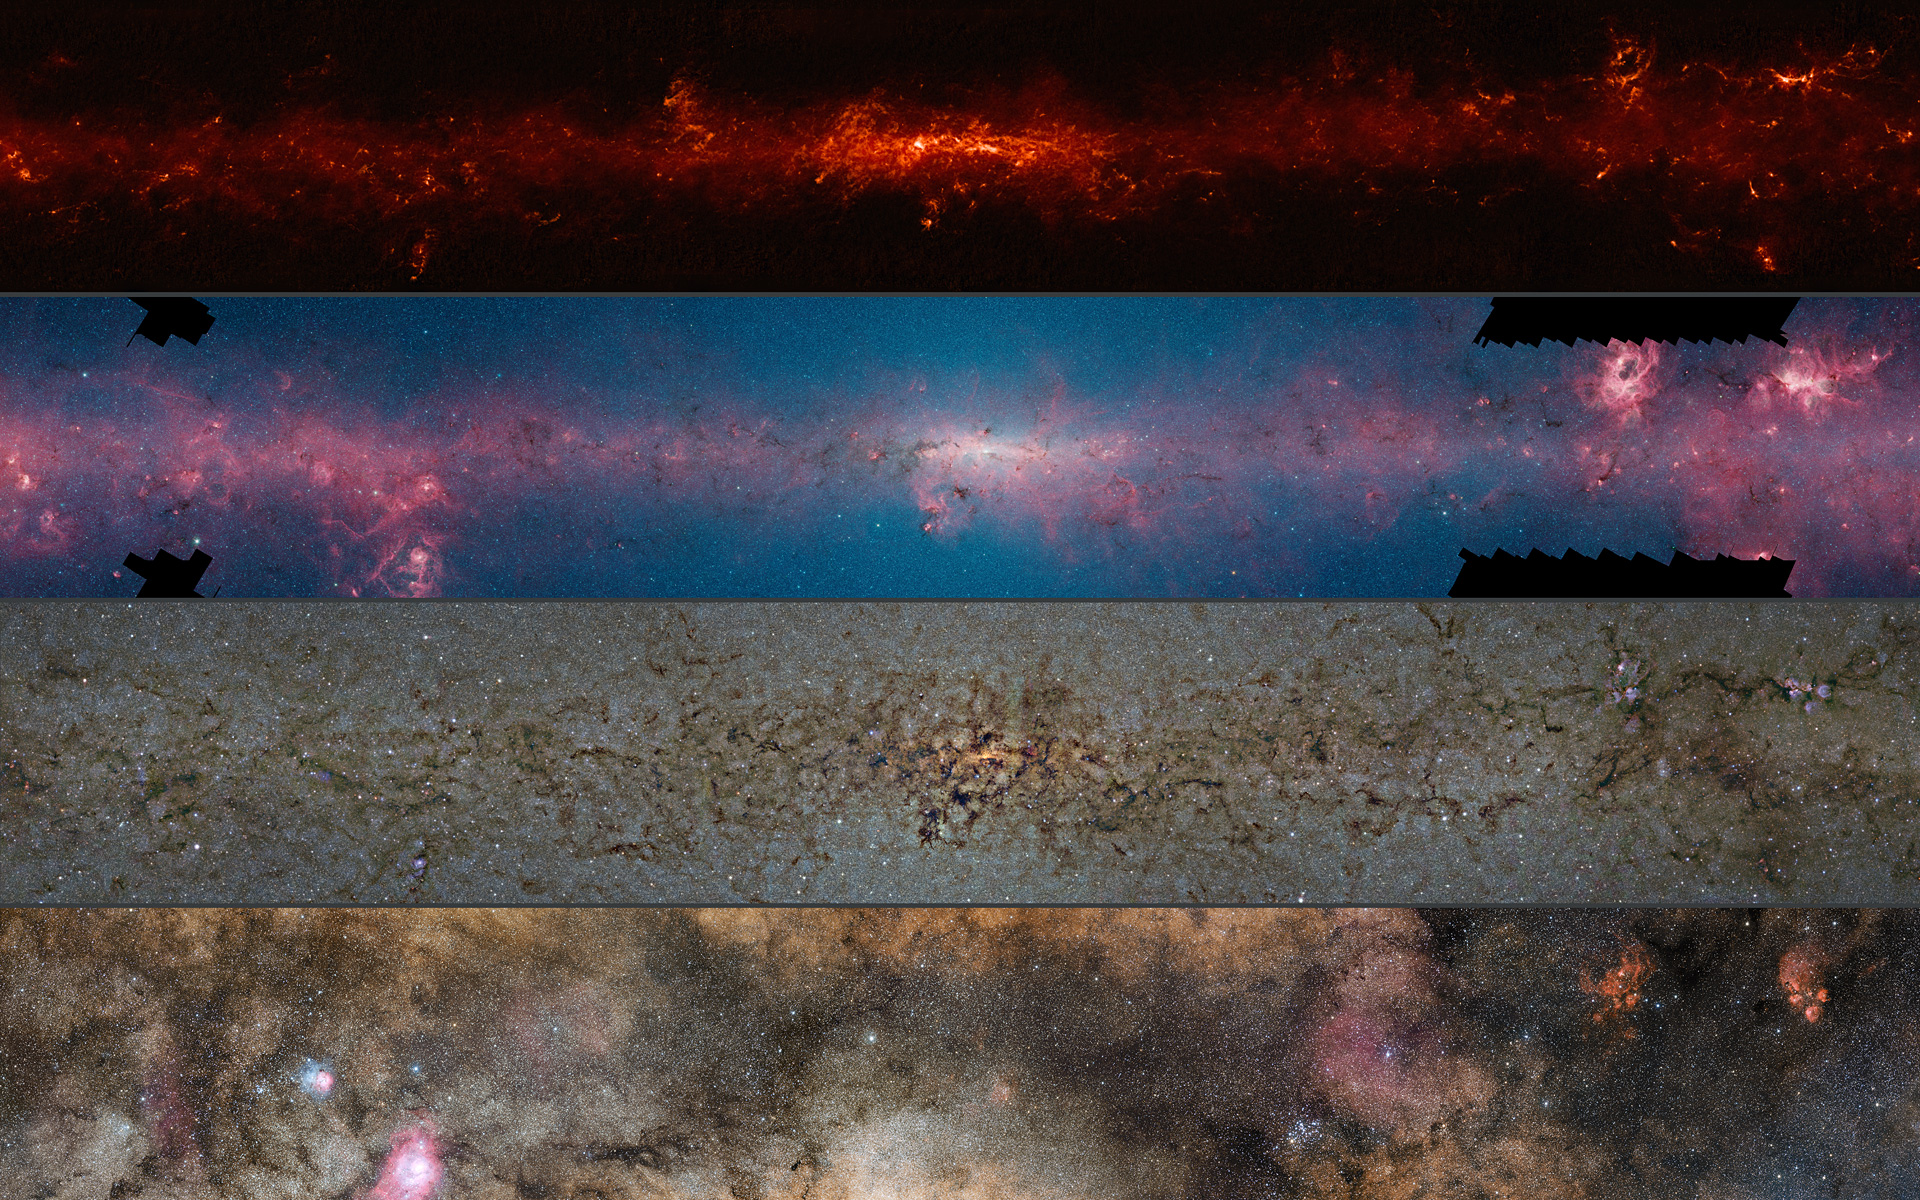 The Milky Way in newer detail. All images via ESO, ATLASGAL, NASA, GLIMPSE, VVV, ESA, Planck, Minniti, Guisard